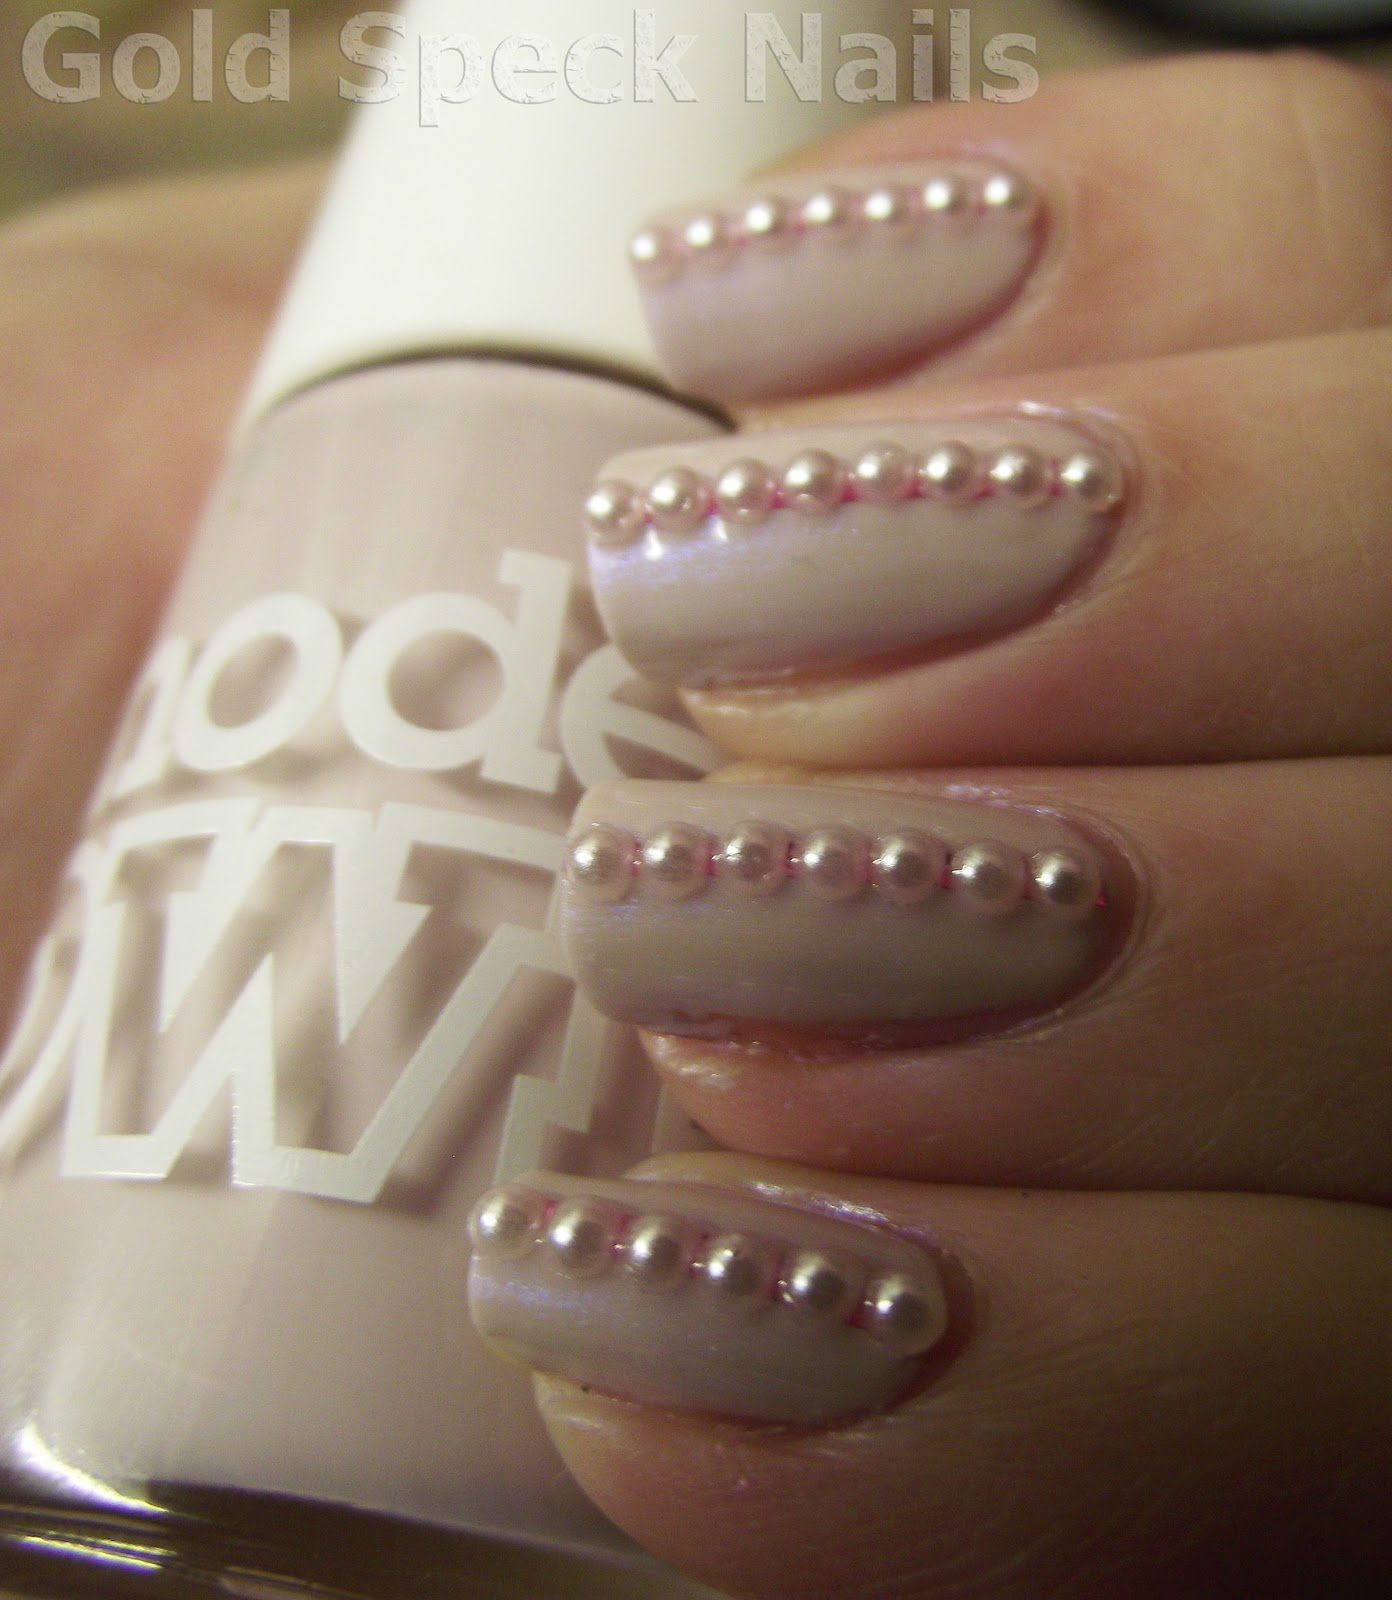 Gold Speck Nails: Models Own - Utopia, Pink Striping Tape & Pearls